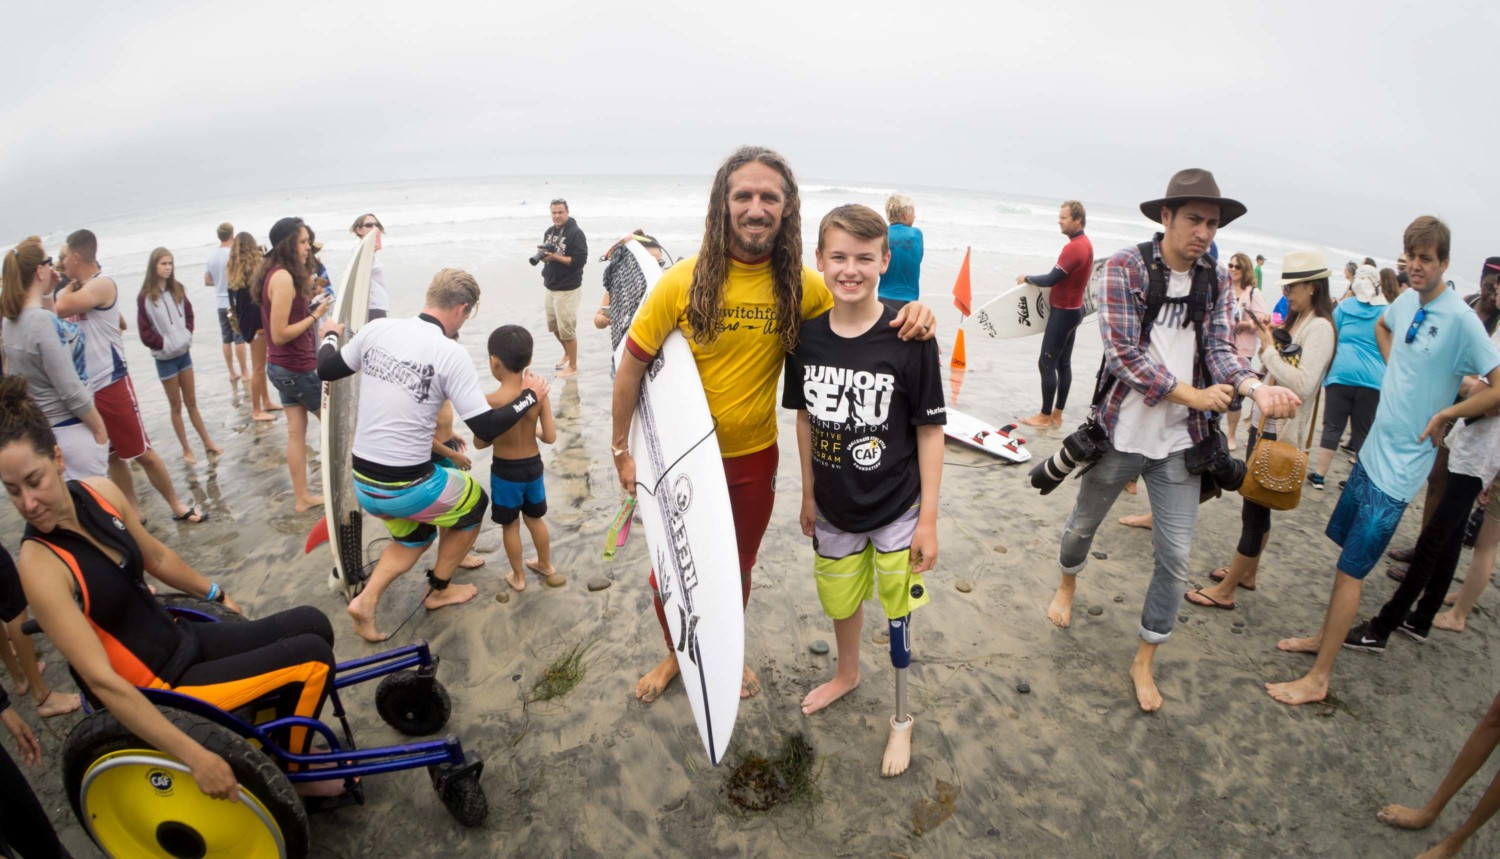 Sports Talk: Time was right for adaptive surfing debut at Switchfoot event